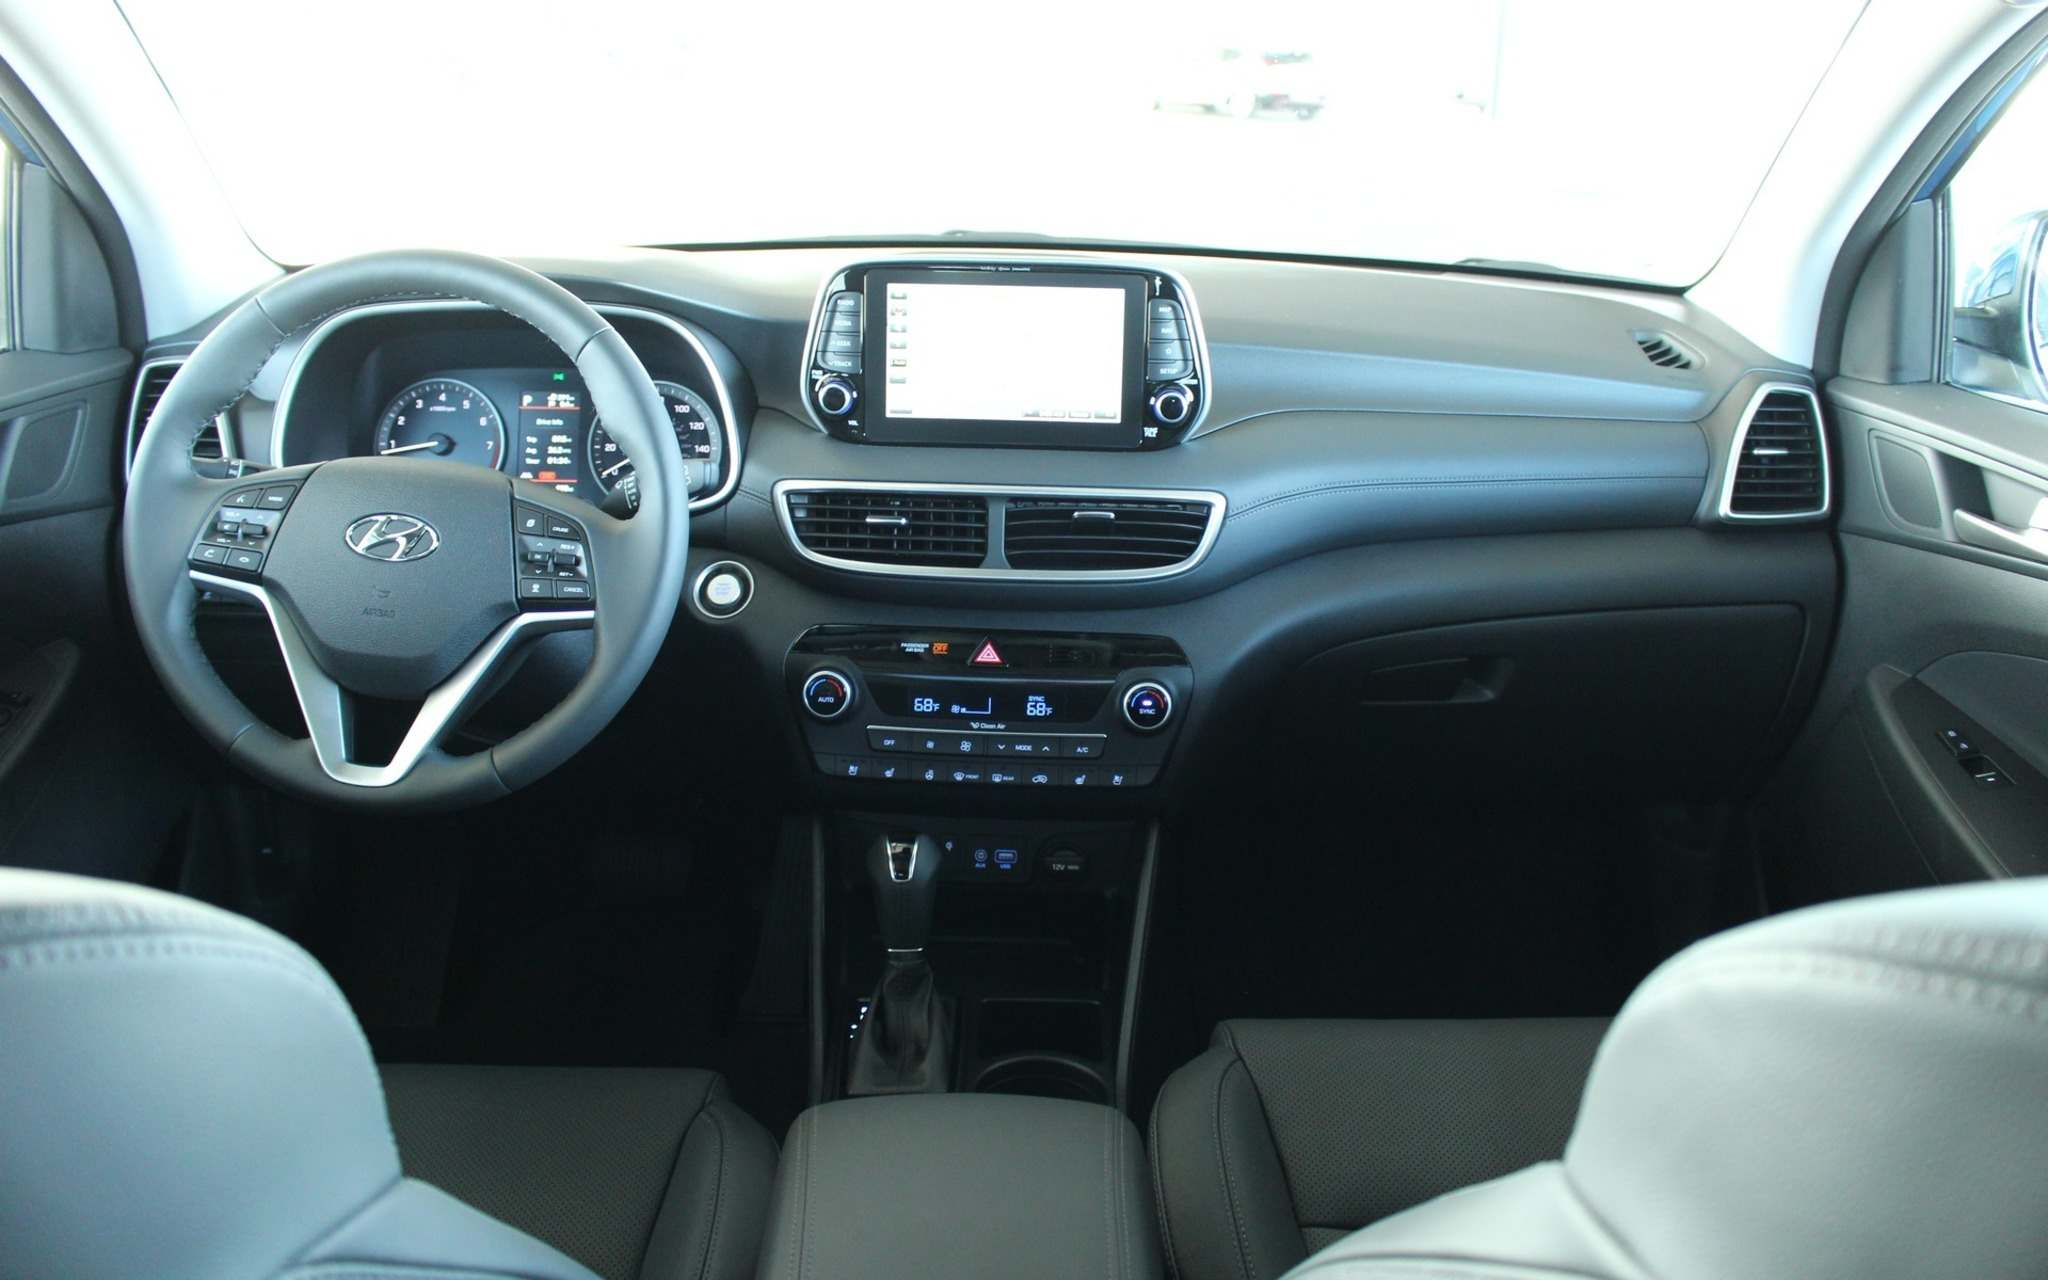 Michel Deslauriers / LC MediaThe 2019 Tucson benefits from a redesigned dashboard with a floating infotainment touchscreen — now 18 centimetres in diameter.